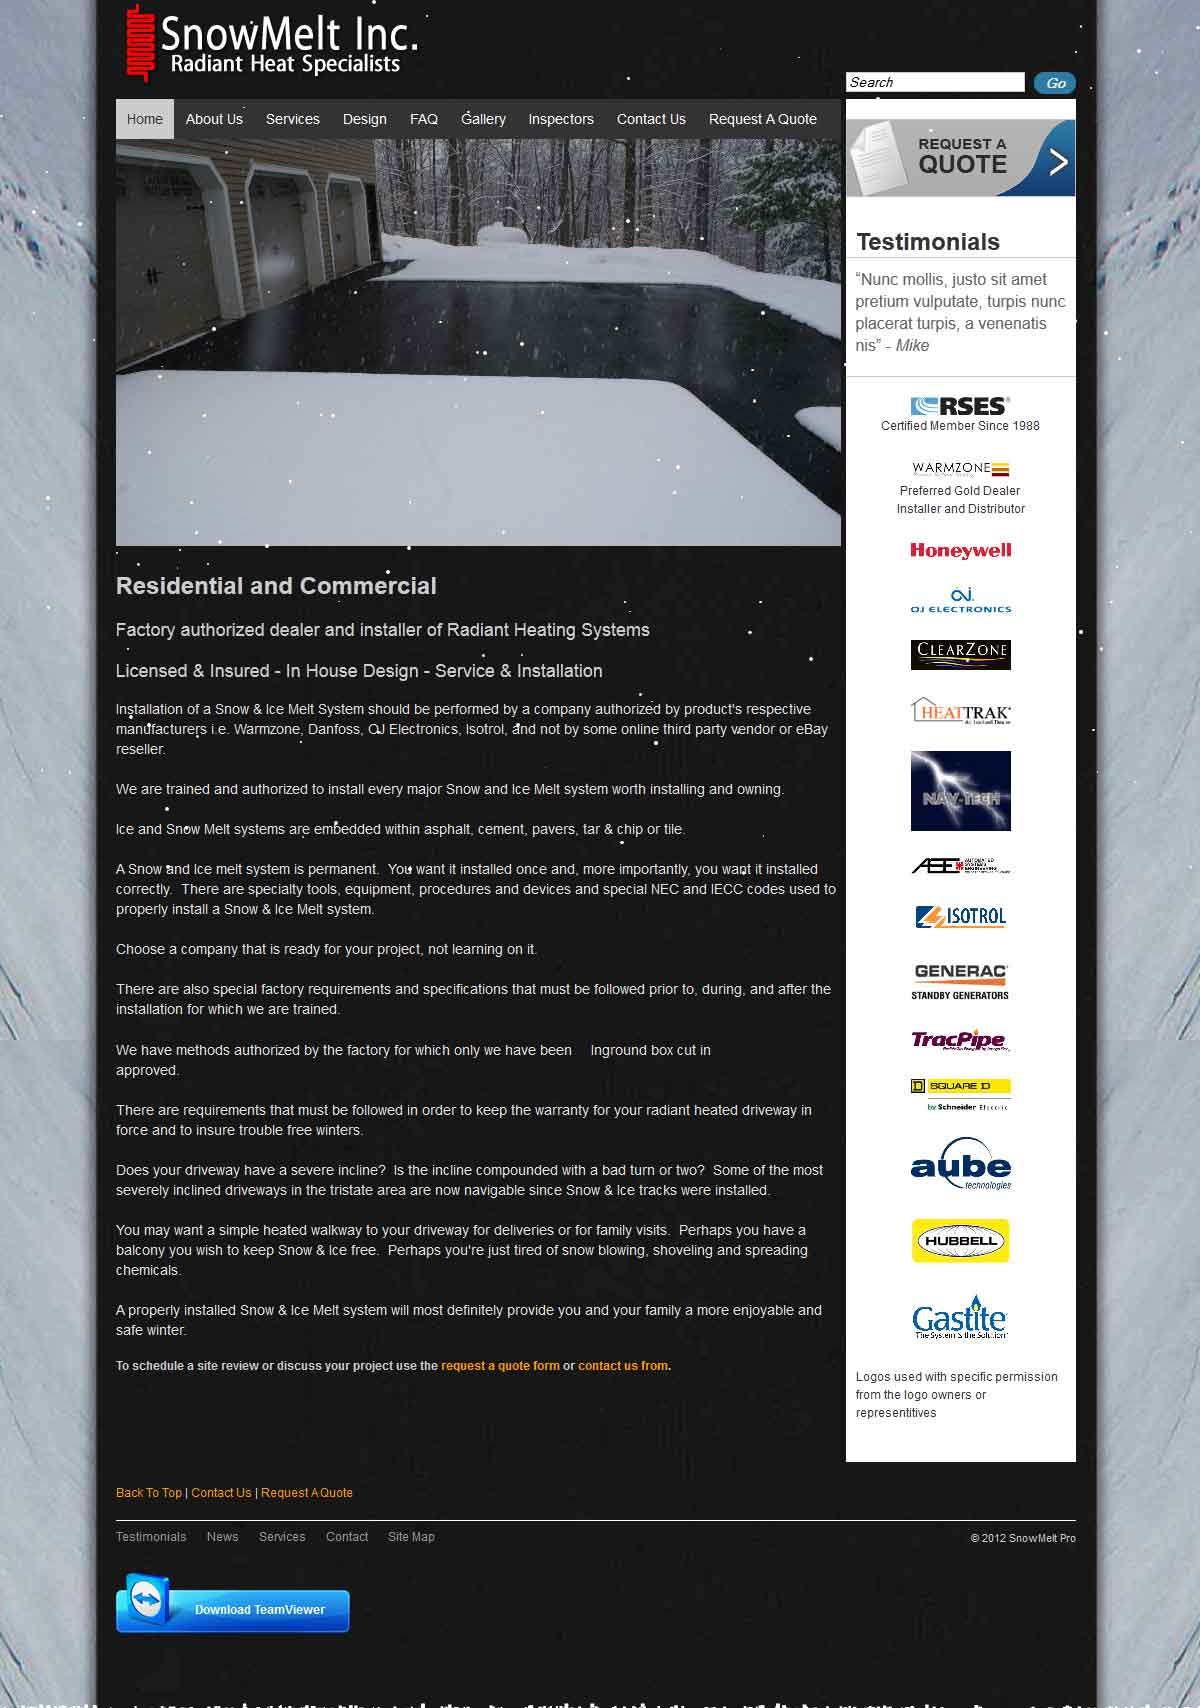 SnowMelt Inc. Website Development & Custom CMS